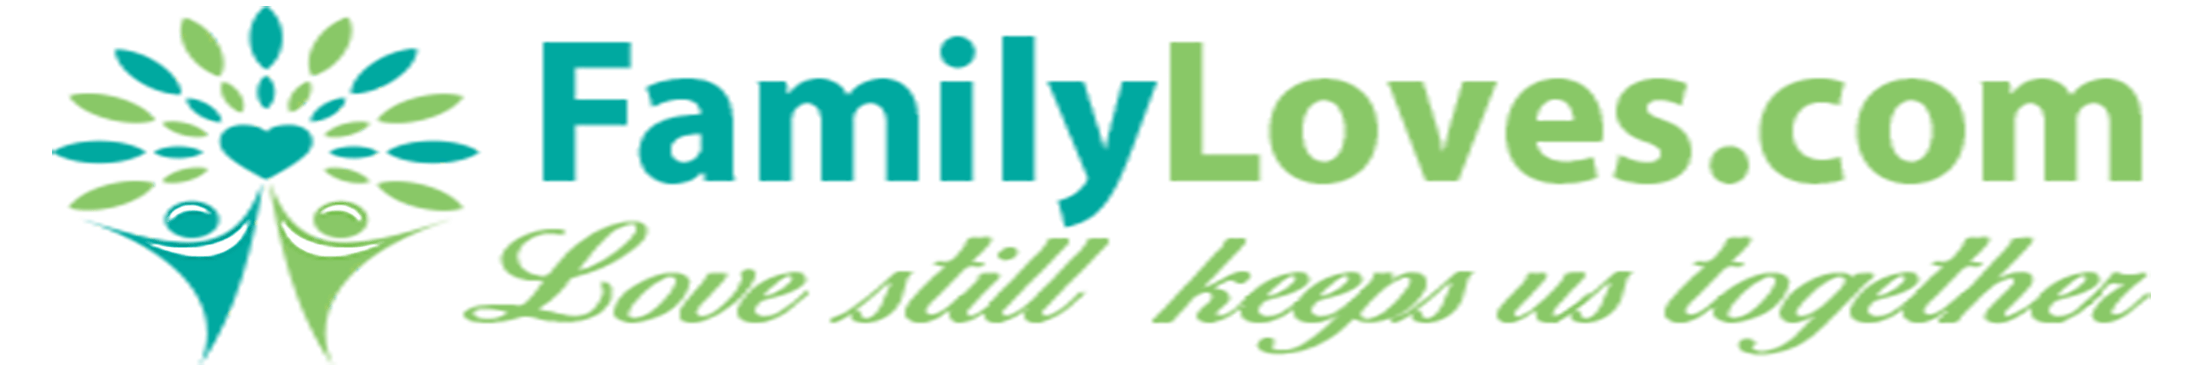 Familyloves Help Center home page